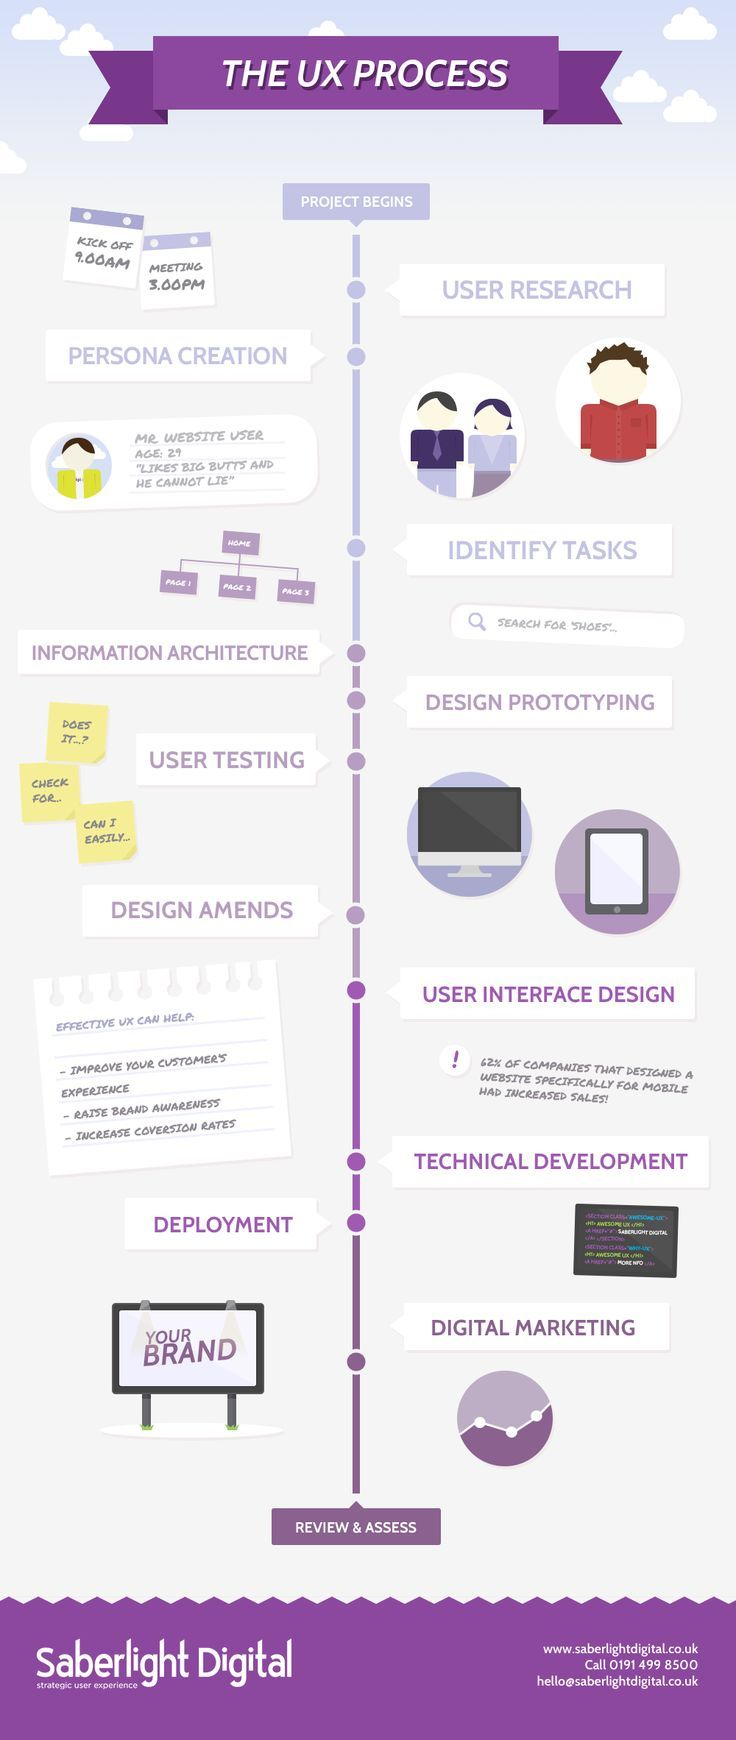 IT WORKS FOR E-LEARNING DESIGN TOO -------- >>>> The UX Process. If you like UX, design, or design thinking, check out theuxblog.com